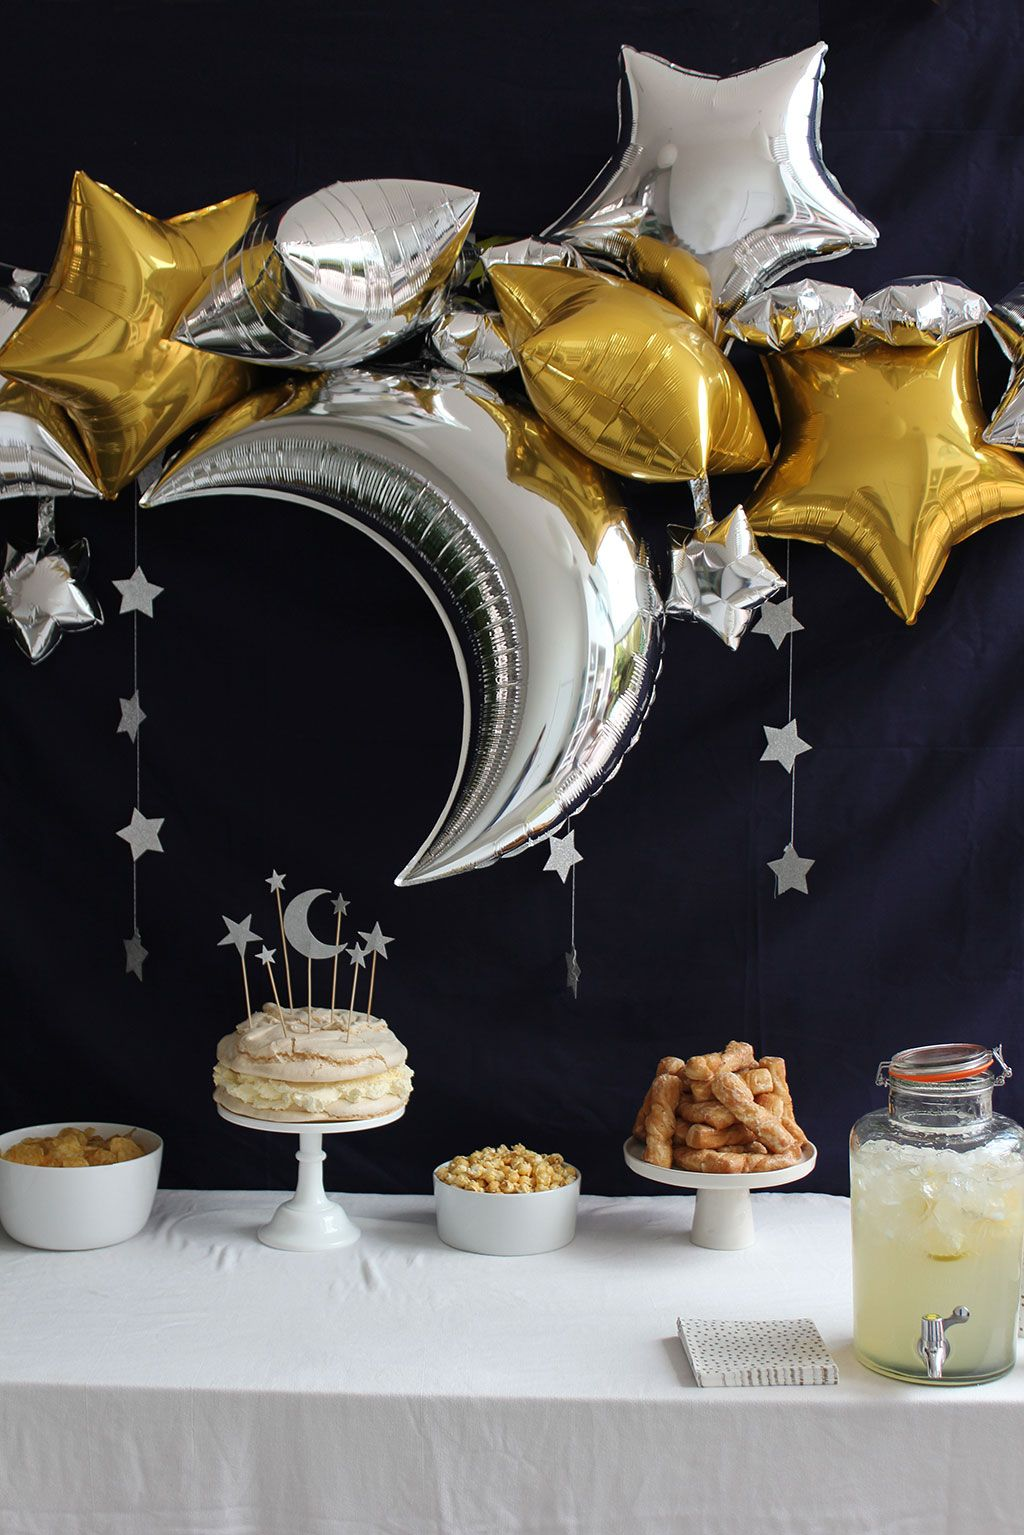 birthday desert table ideas gold and silver stars and moon moon and stars party pinterest. Black Bedroom Furniture Sets. Home Design Ideas